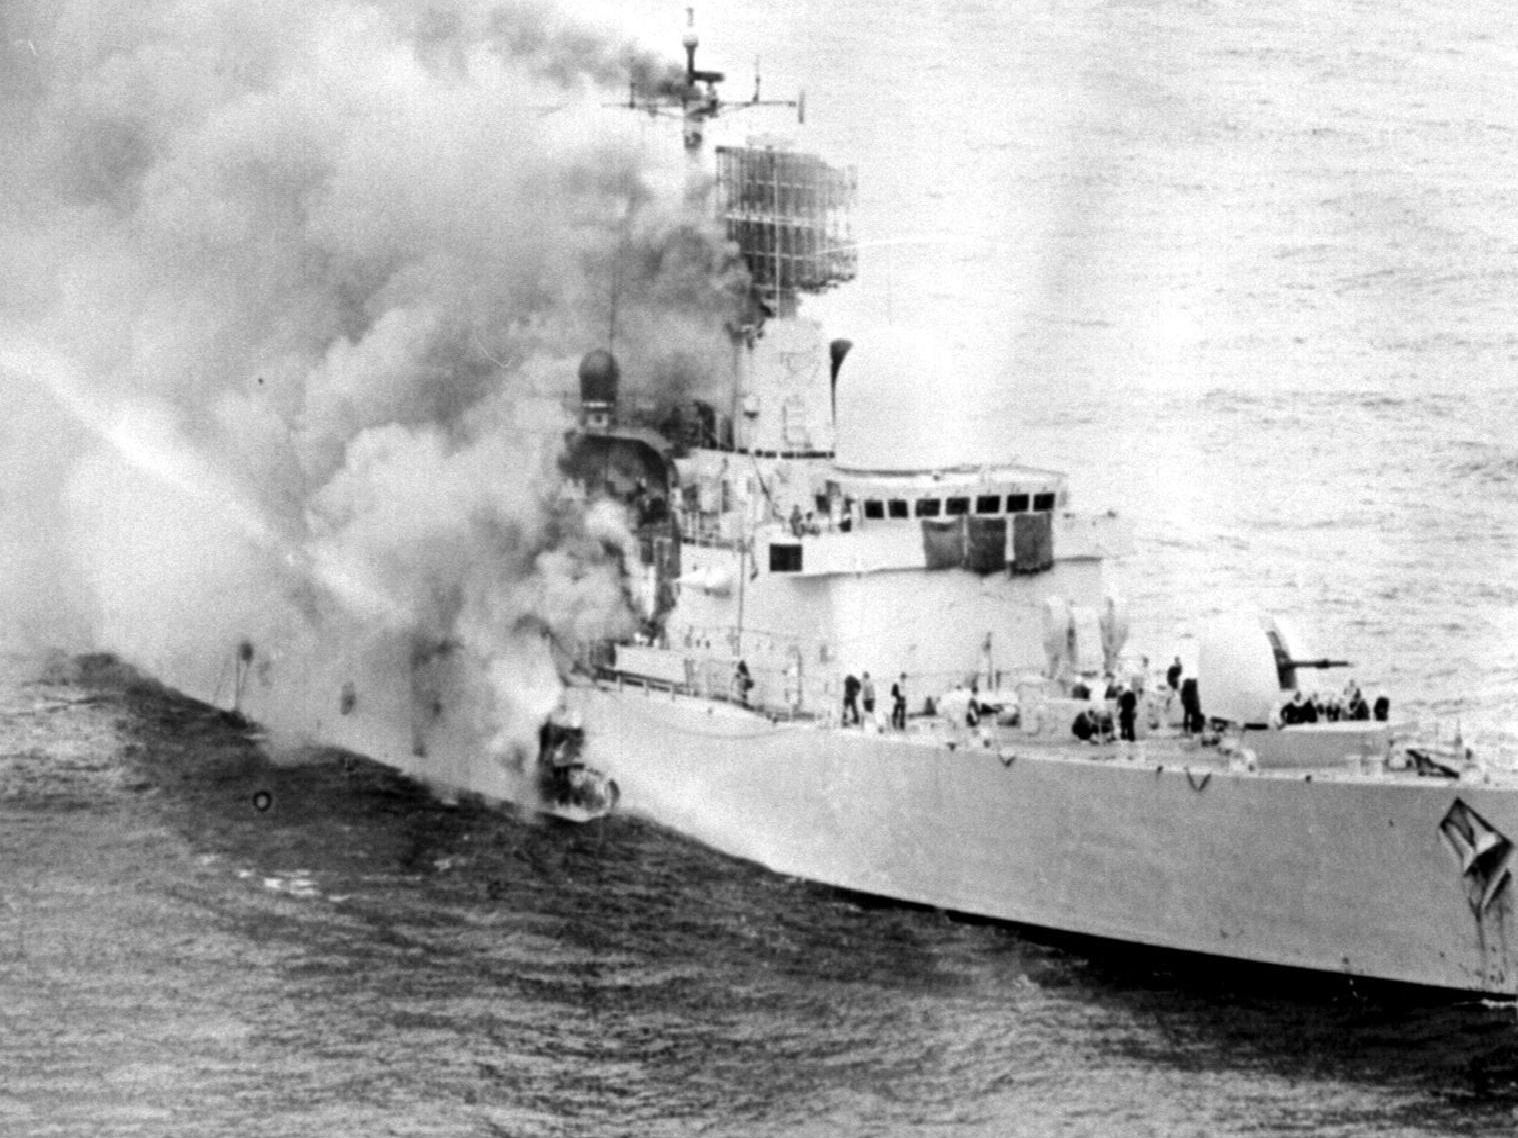 The iconic image of HMS Sheffield ablaze in the South Atlantic.